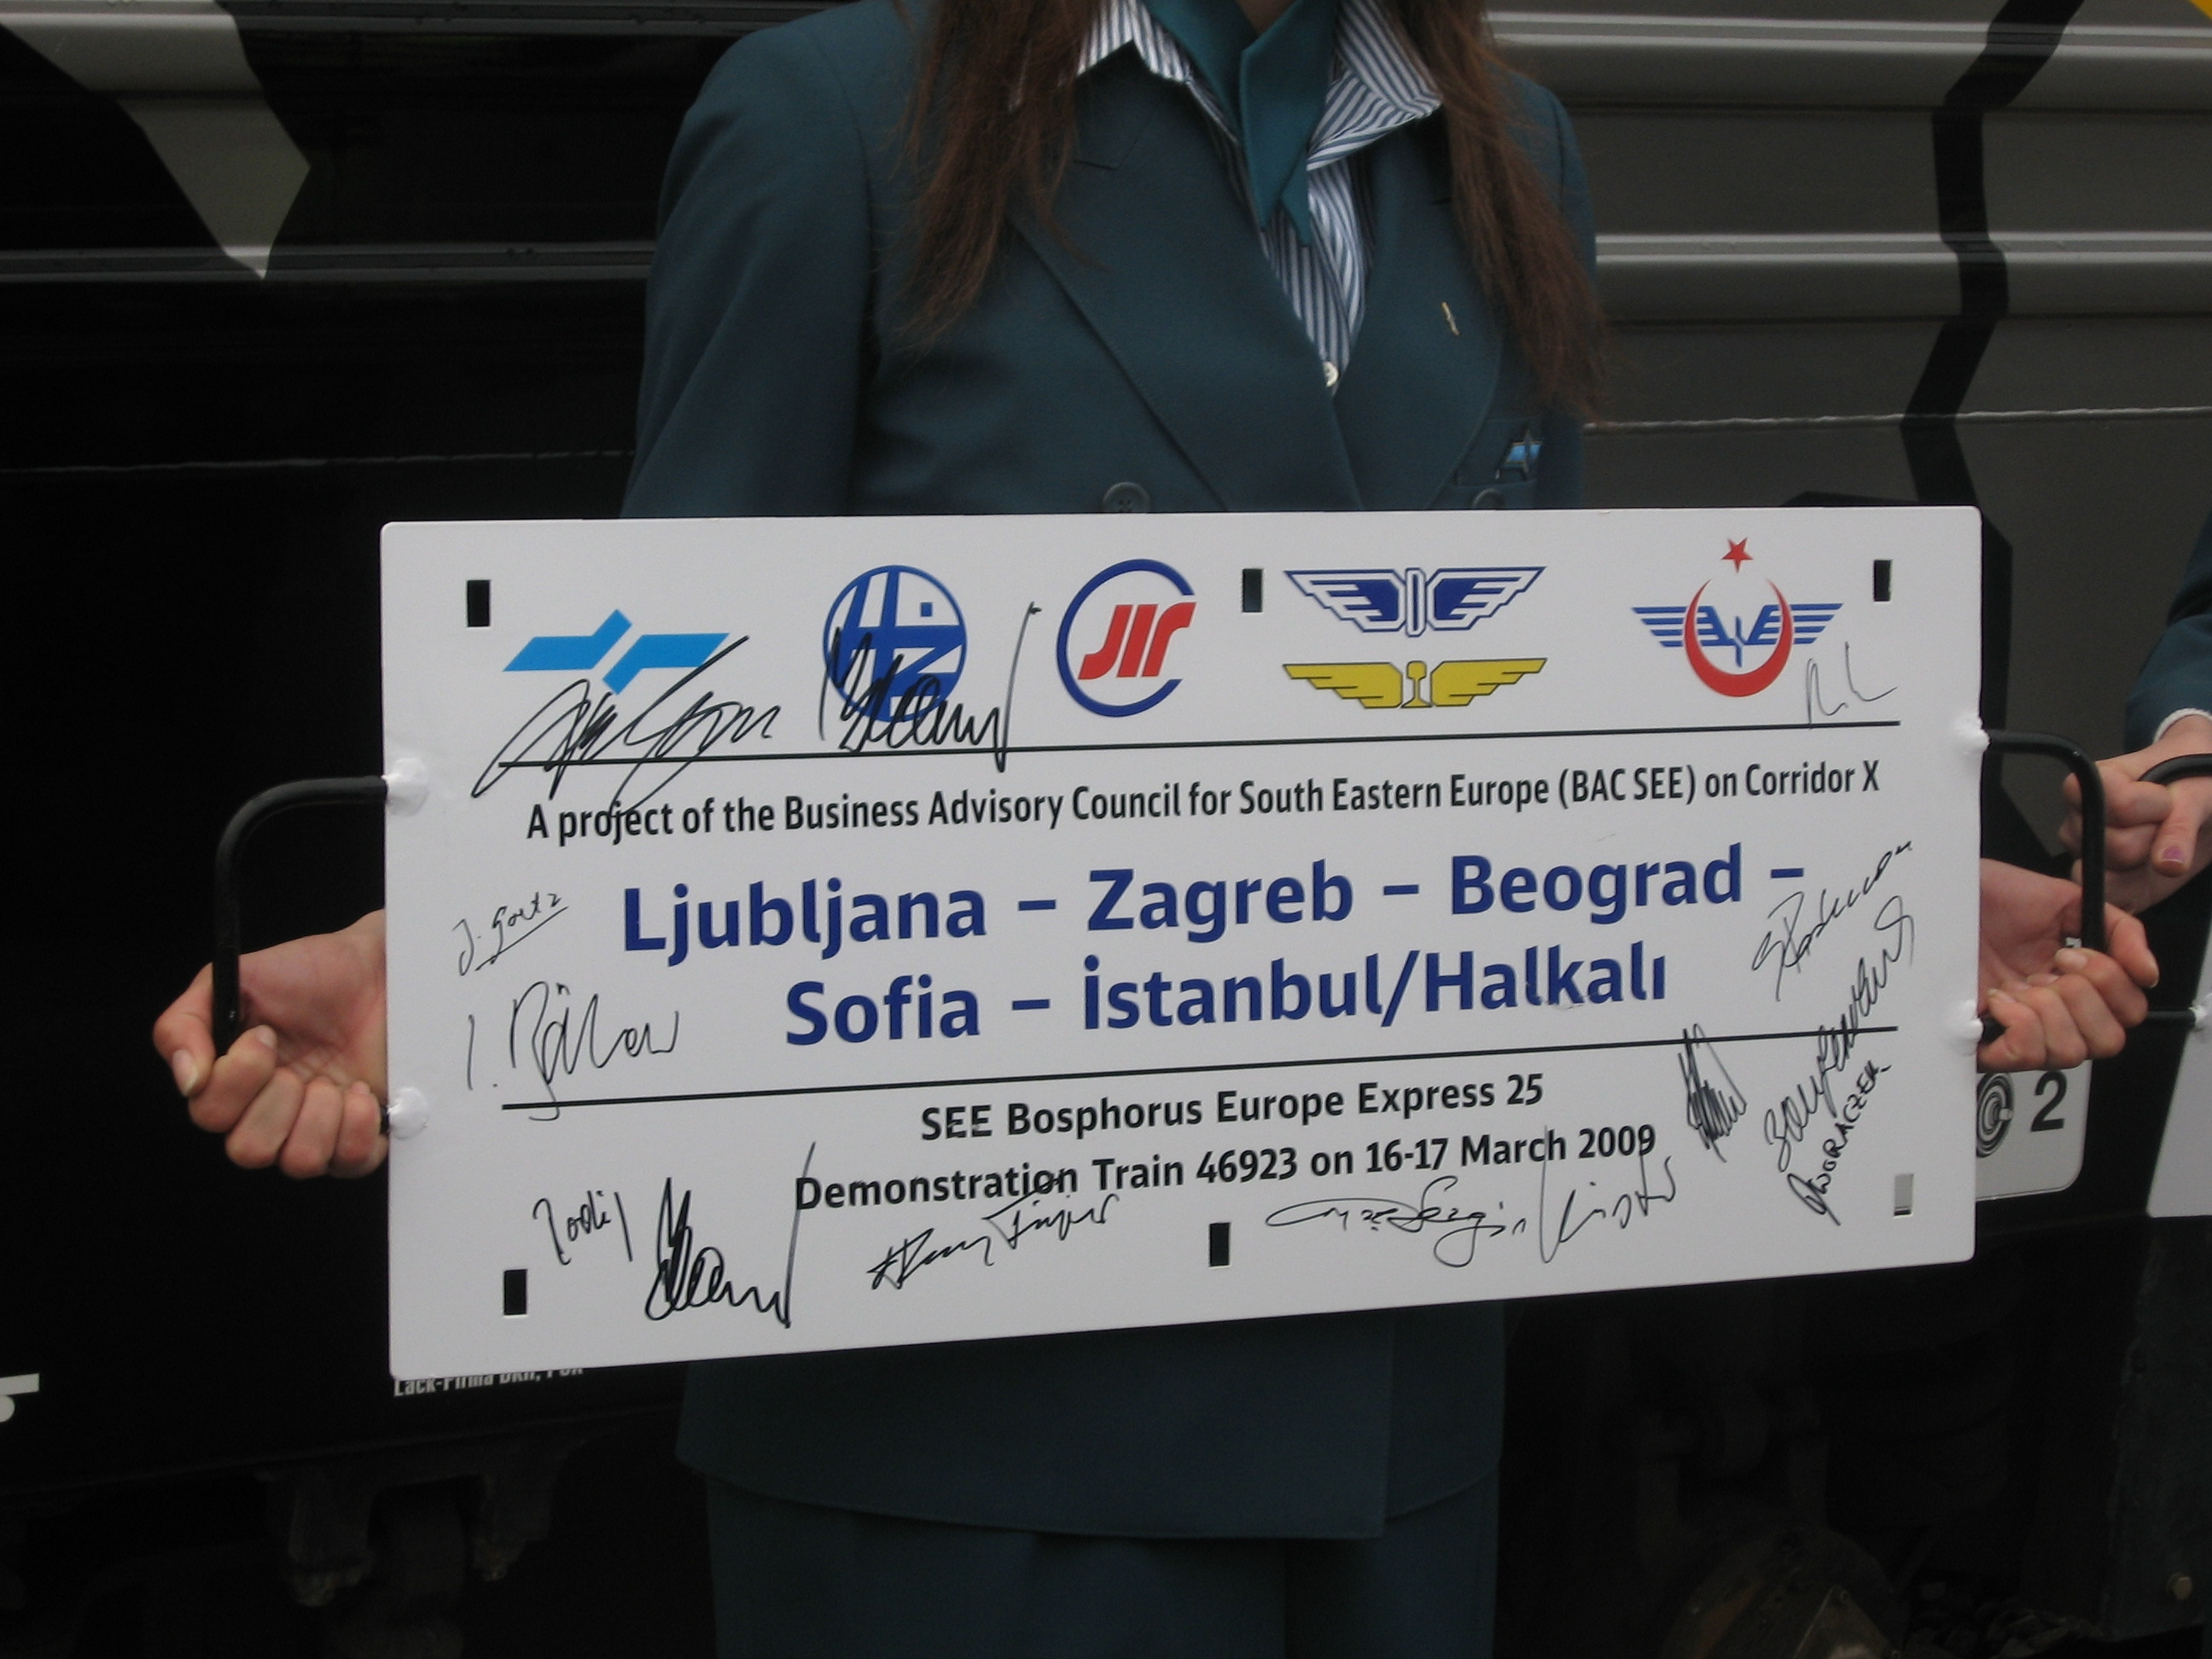 On 16 March the container train named